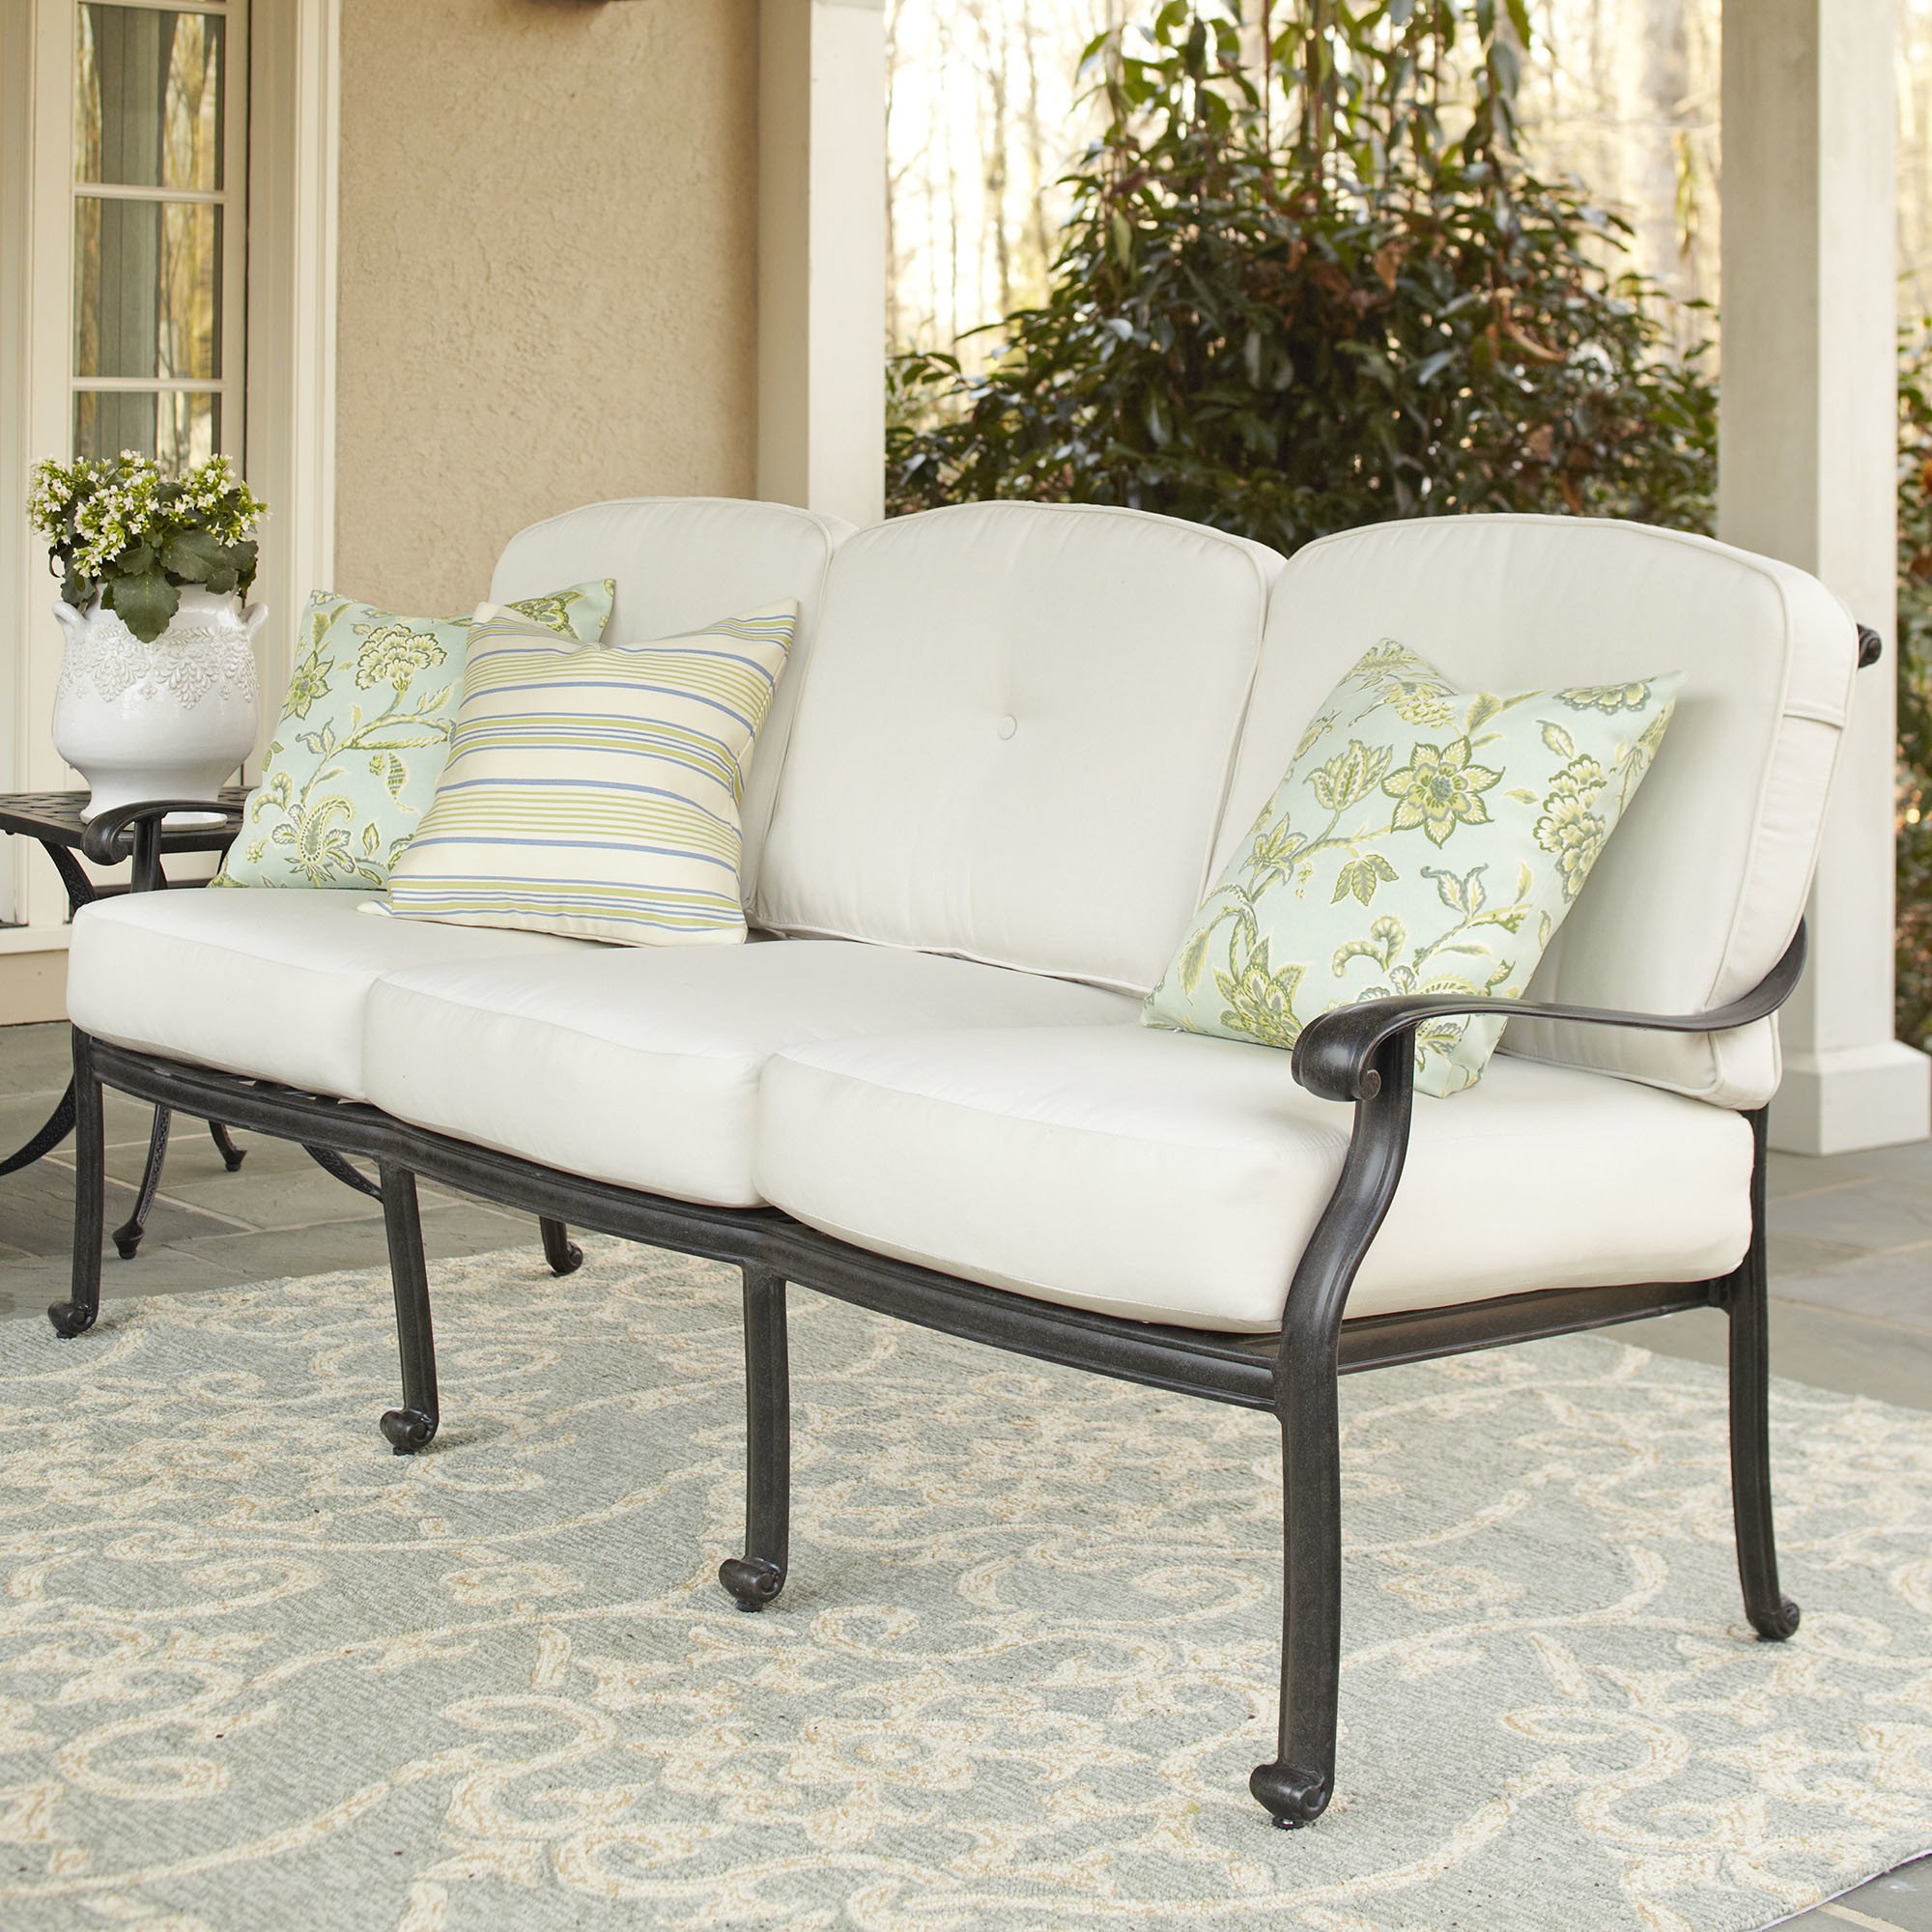 outdoor cushions for chairs kitchen table and set white deep seating replacement furniture